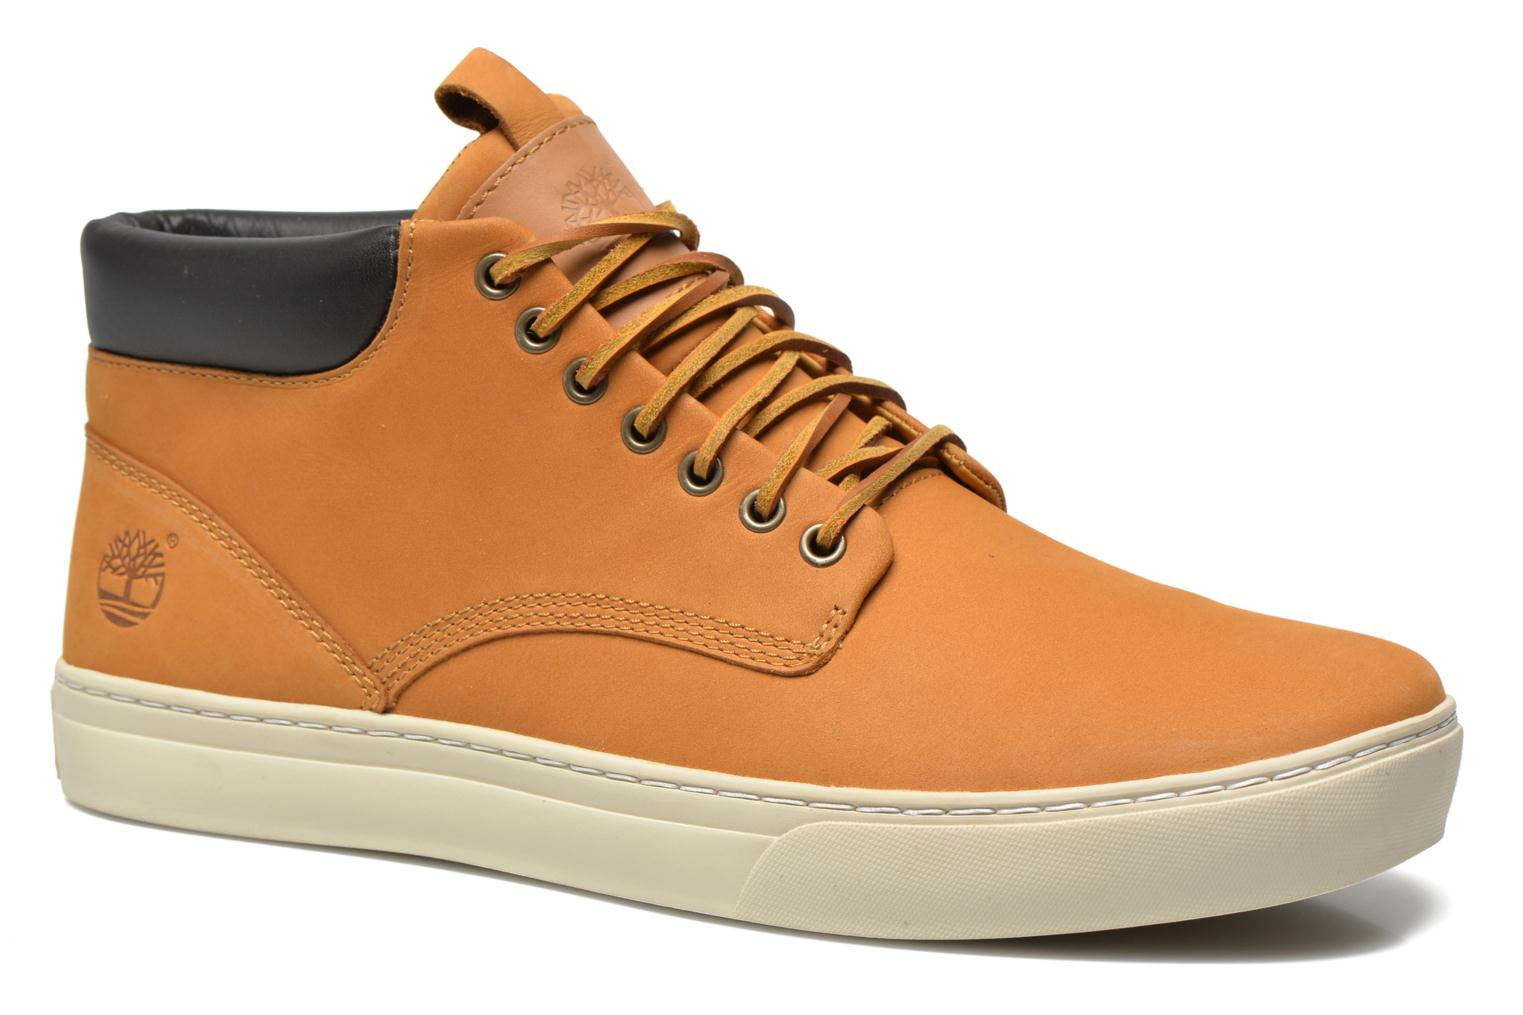 timberland boots earthkeepers 2.0